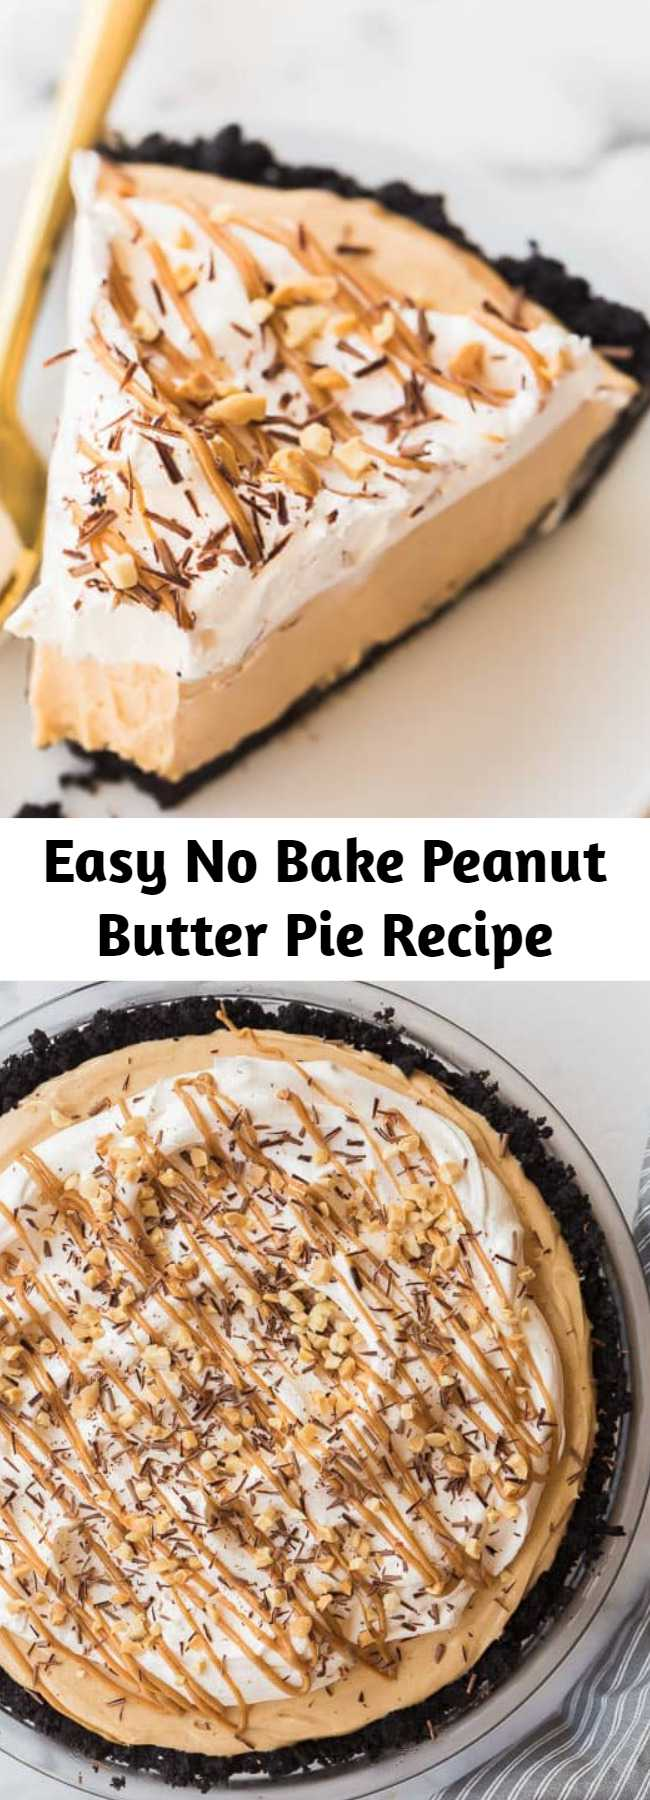 Easy No Bake Peanut Butter Pie Recipe - This Peanut Butter Pie is completely no bake and made with a chocolate Oreo crust, peanut butter cream cheese filling, and topped with more chocolate! #peanutbutter #pie #nobake #dessert #recipes